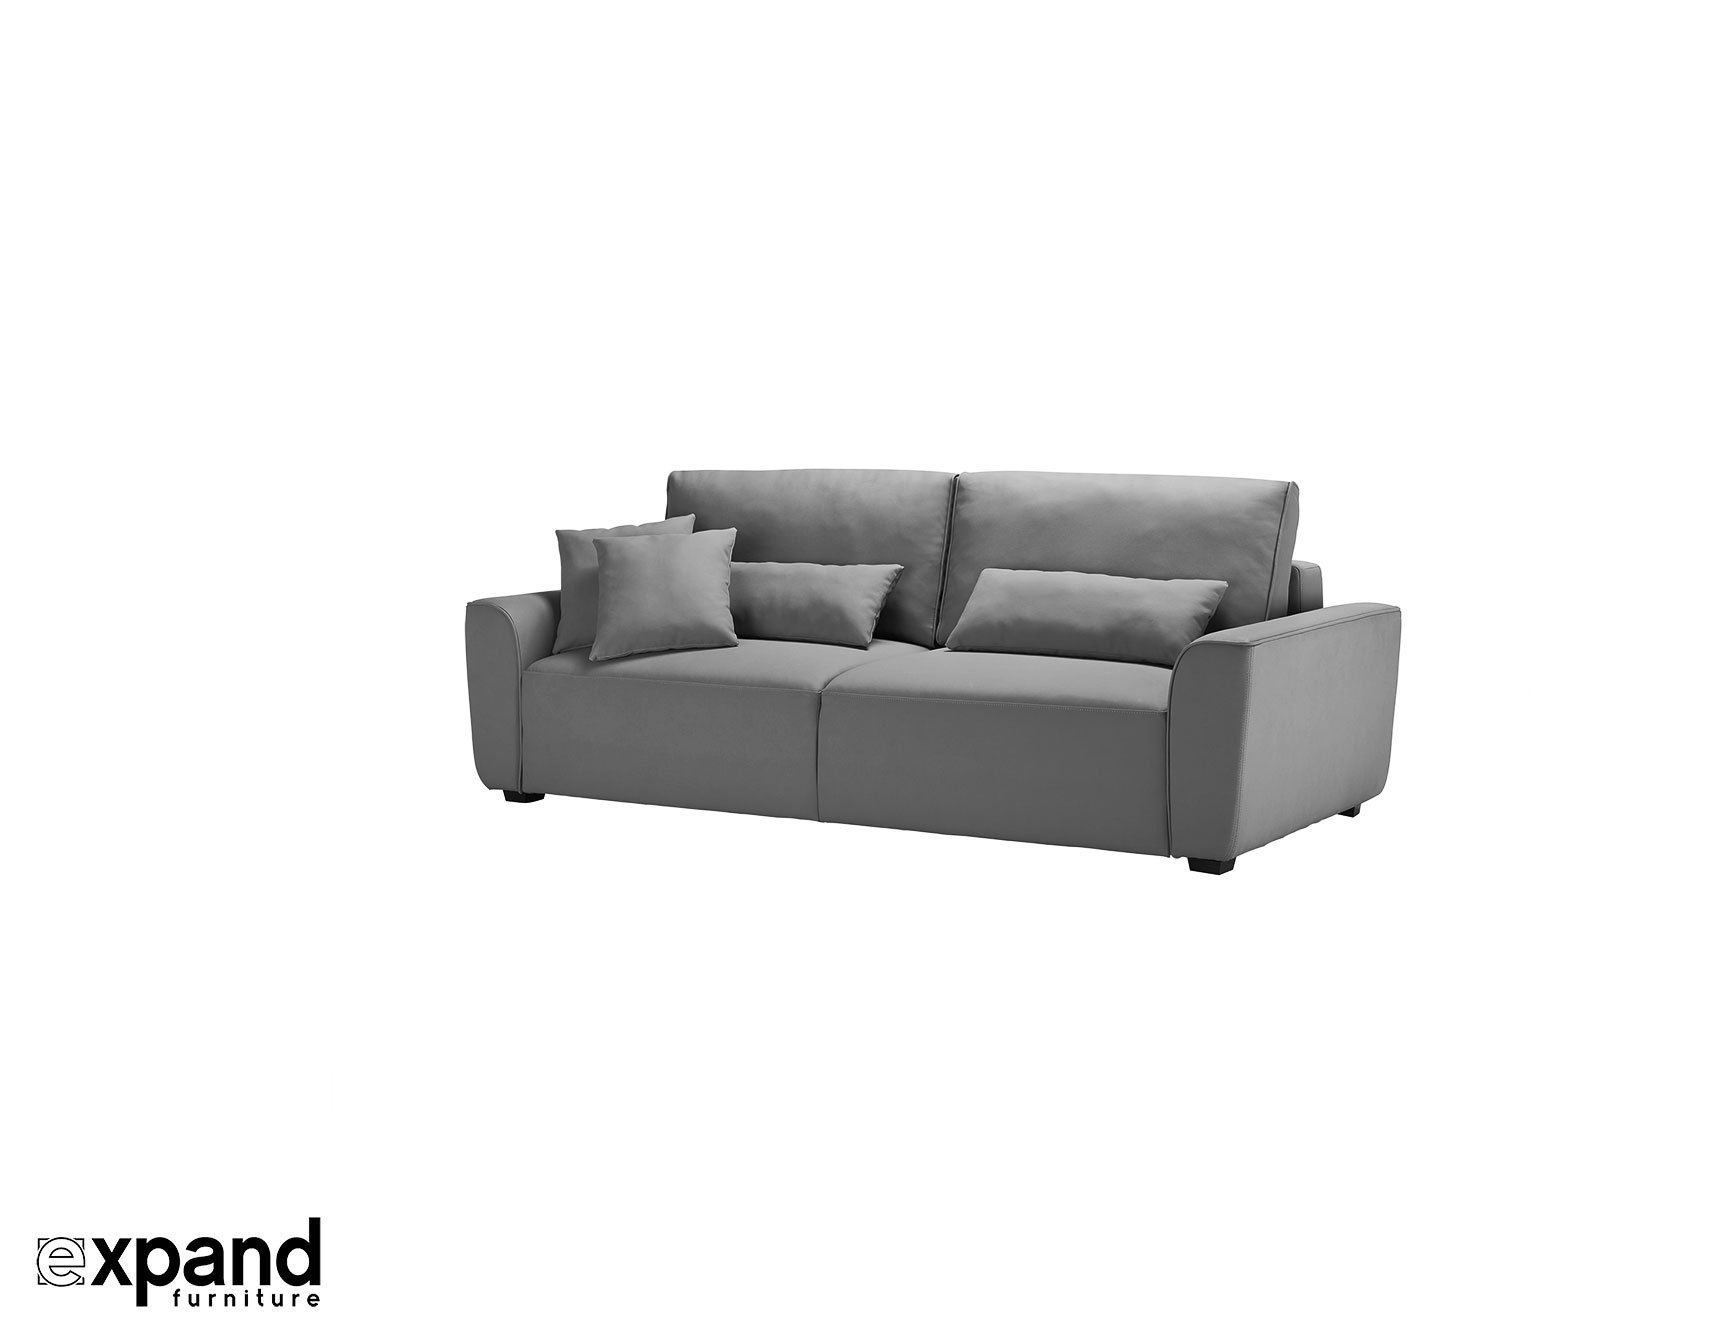 Cloud – Modern Queen Sofa Bed Sleeper